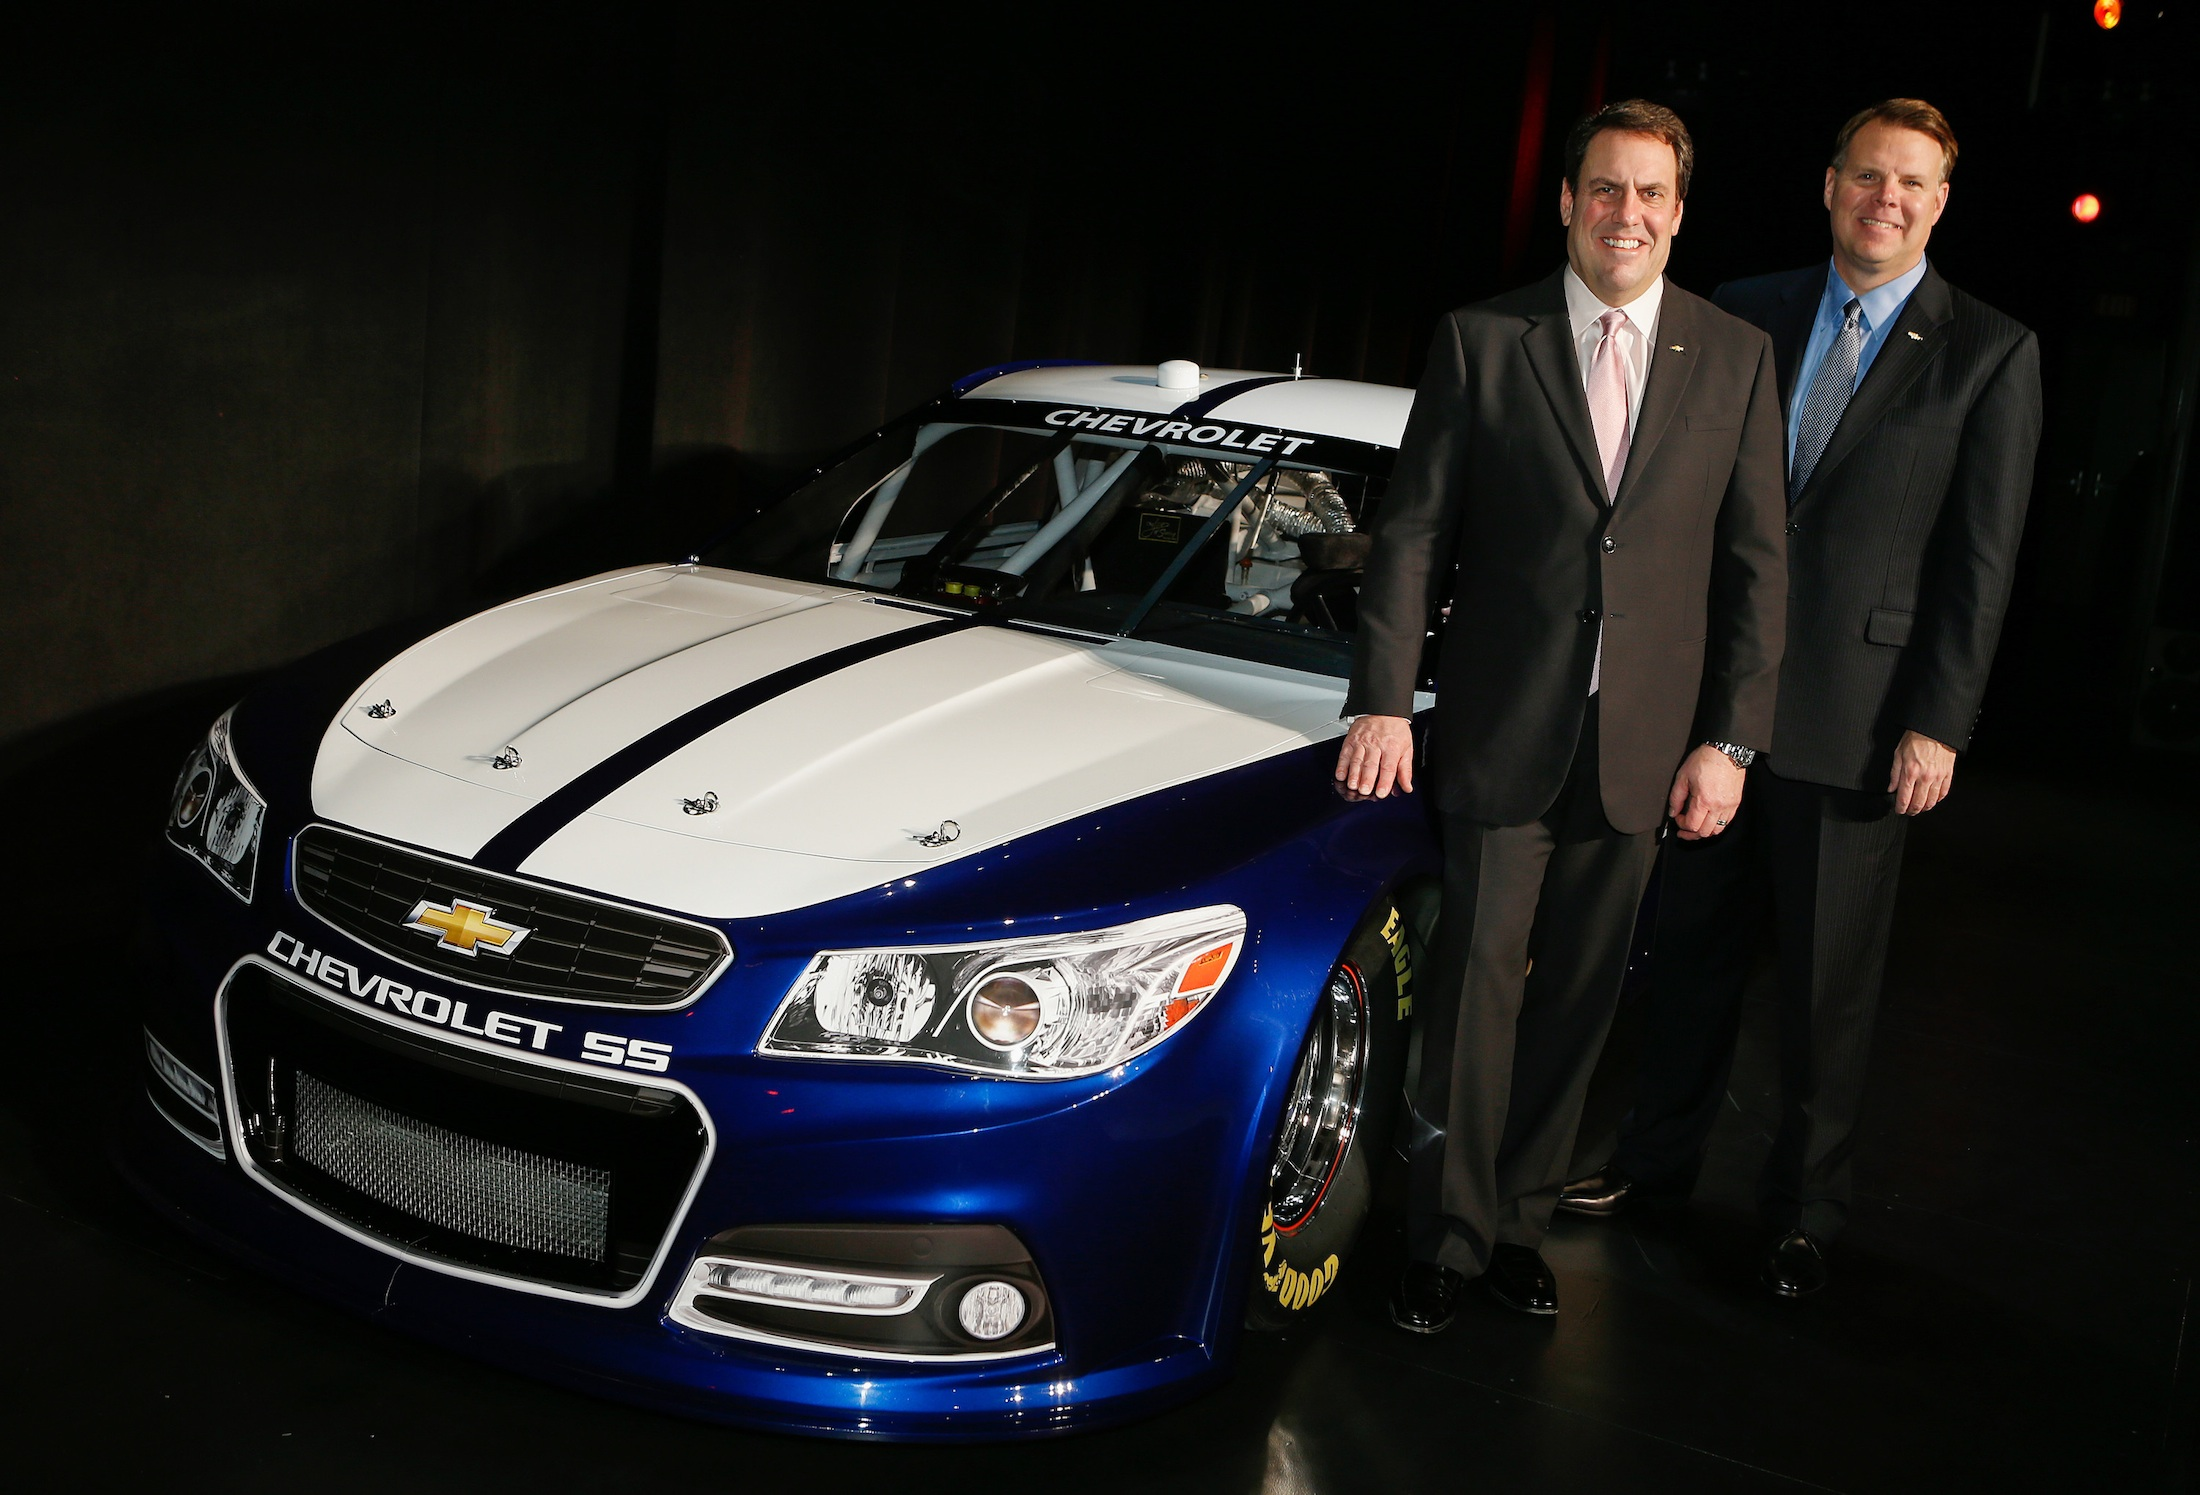 Chevrolet Ss Nascar Revealed 2013 Vf Commodore In Us Race